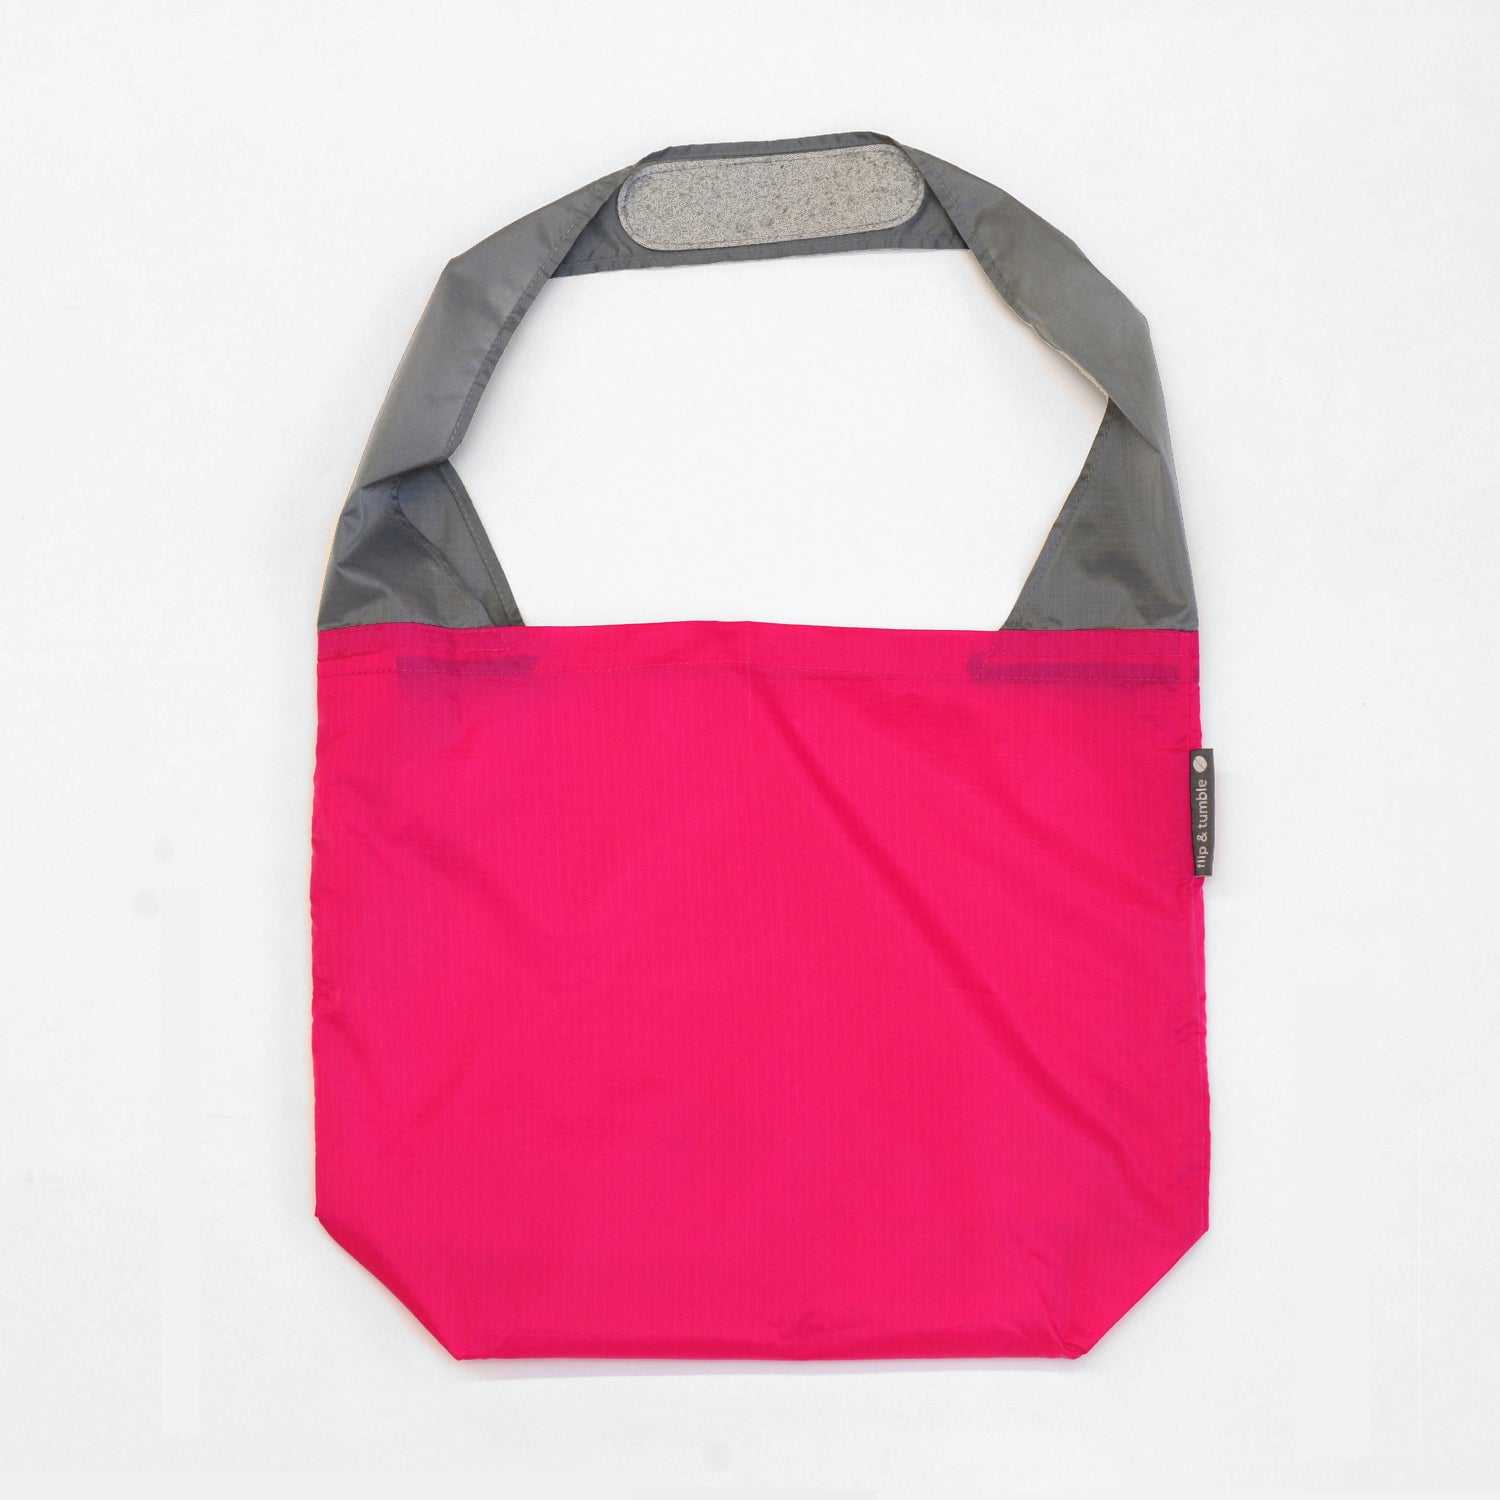 magenta reusable grocery shopping bag